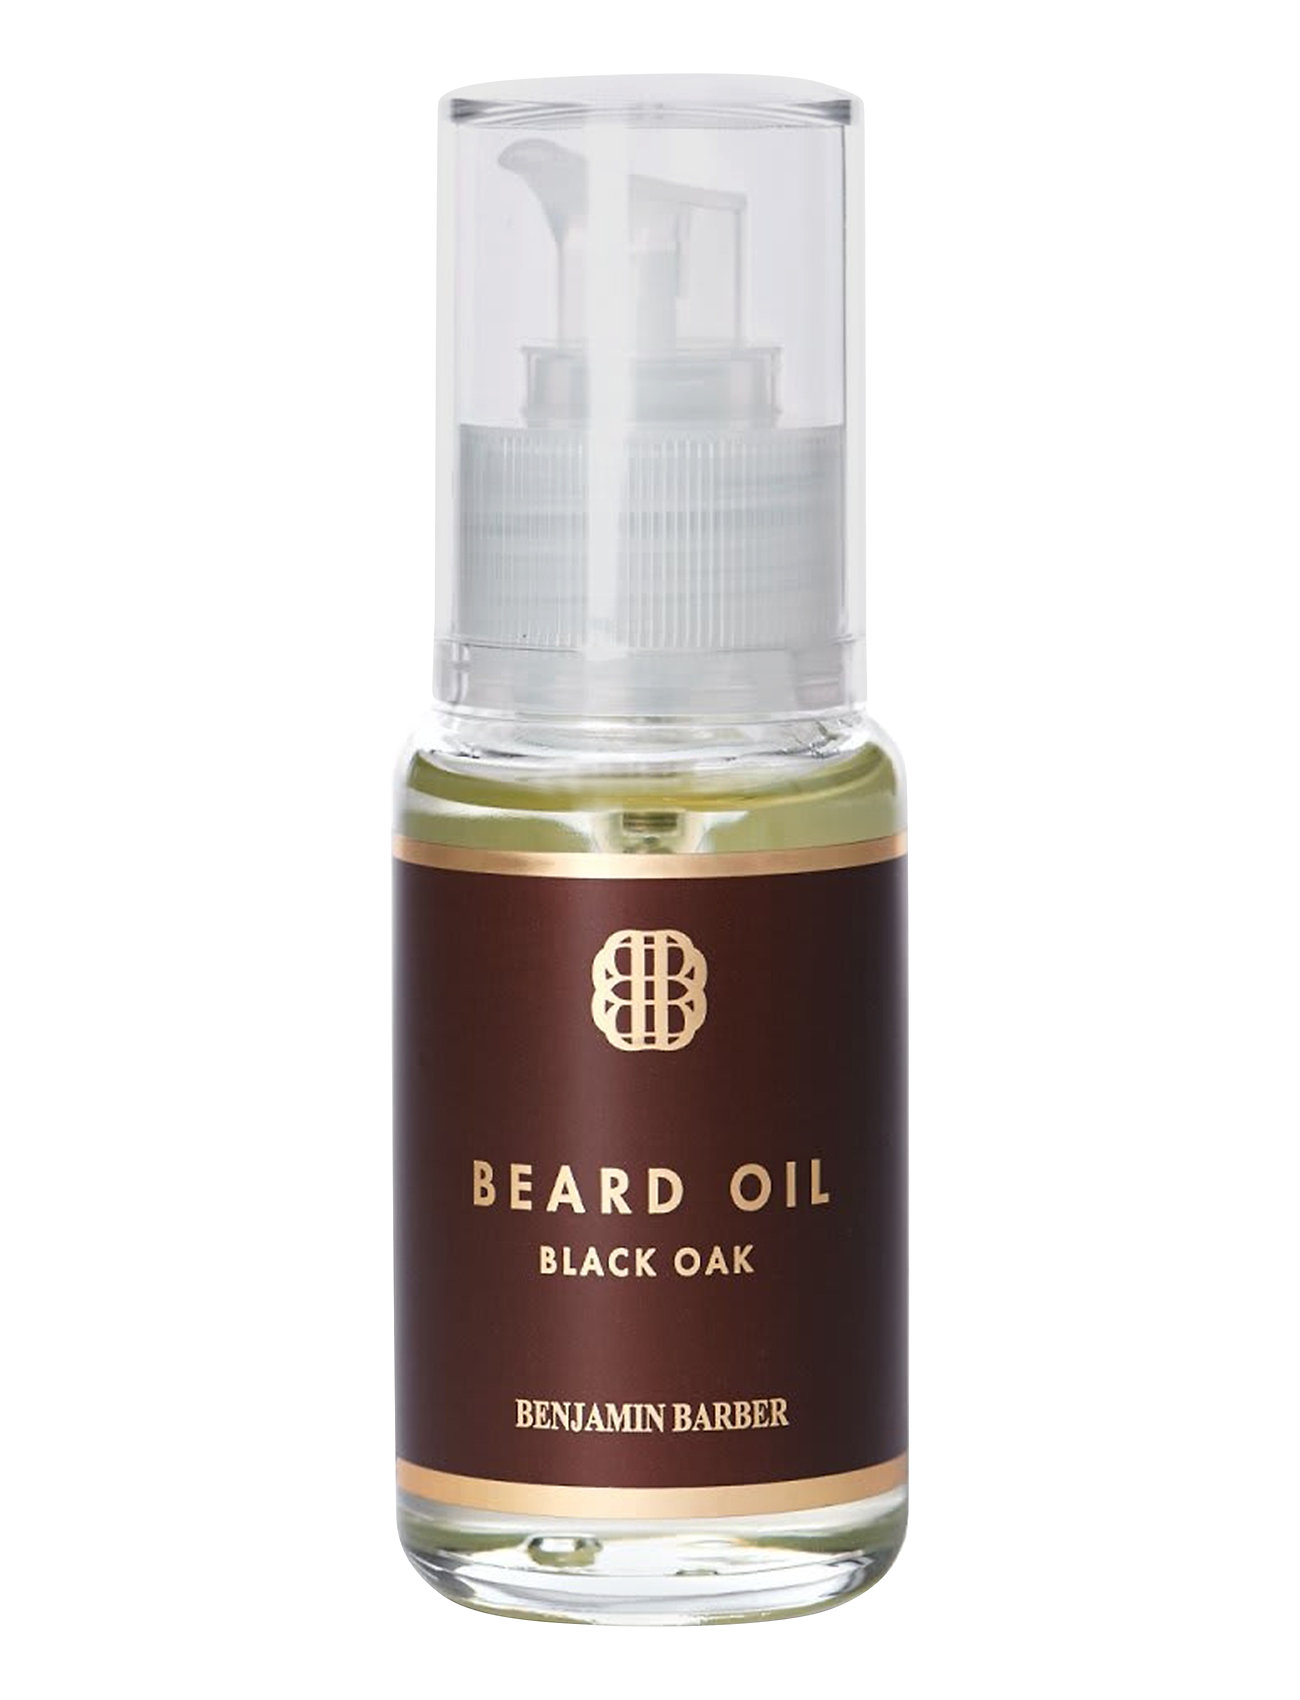 Benjamin Barber Benjamin Barber Beard Oil - NO COLOUR